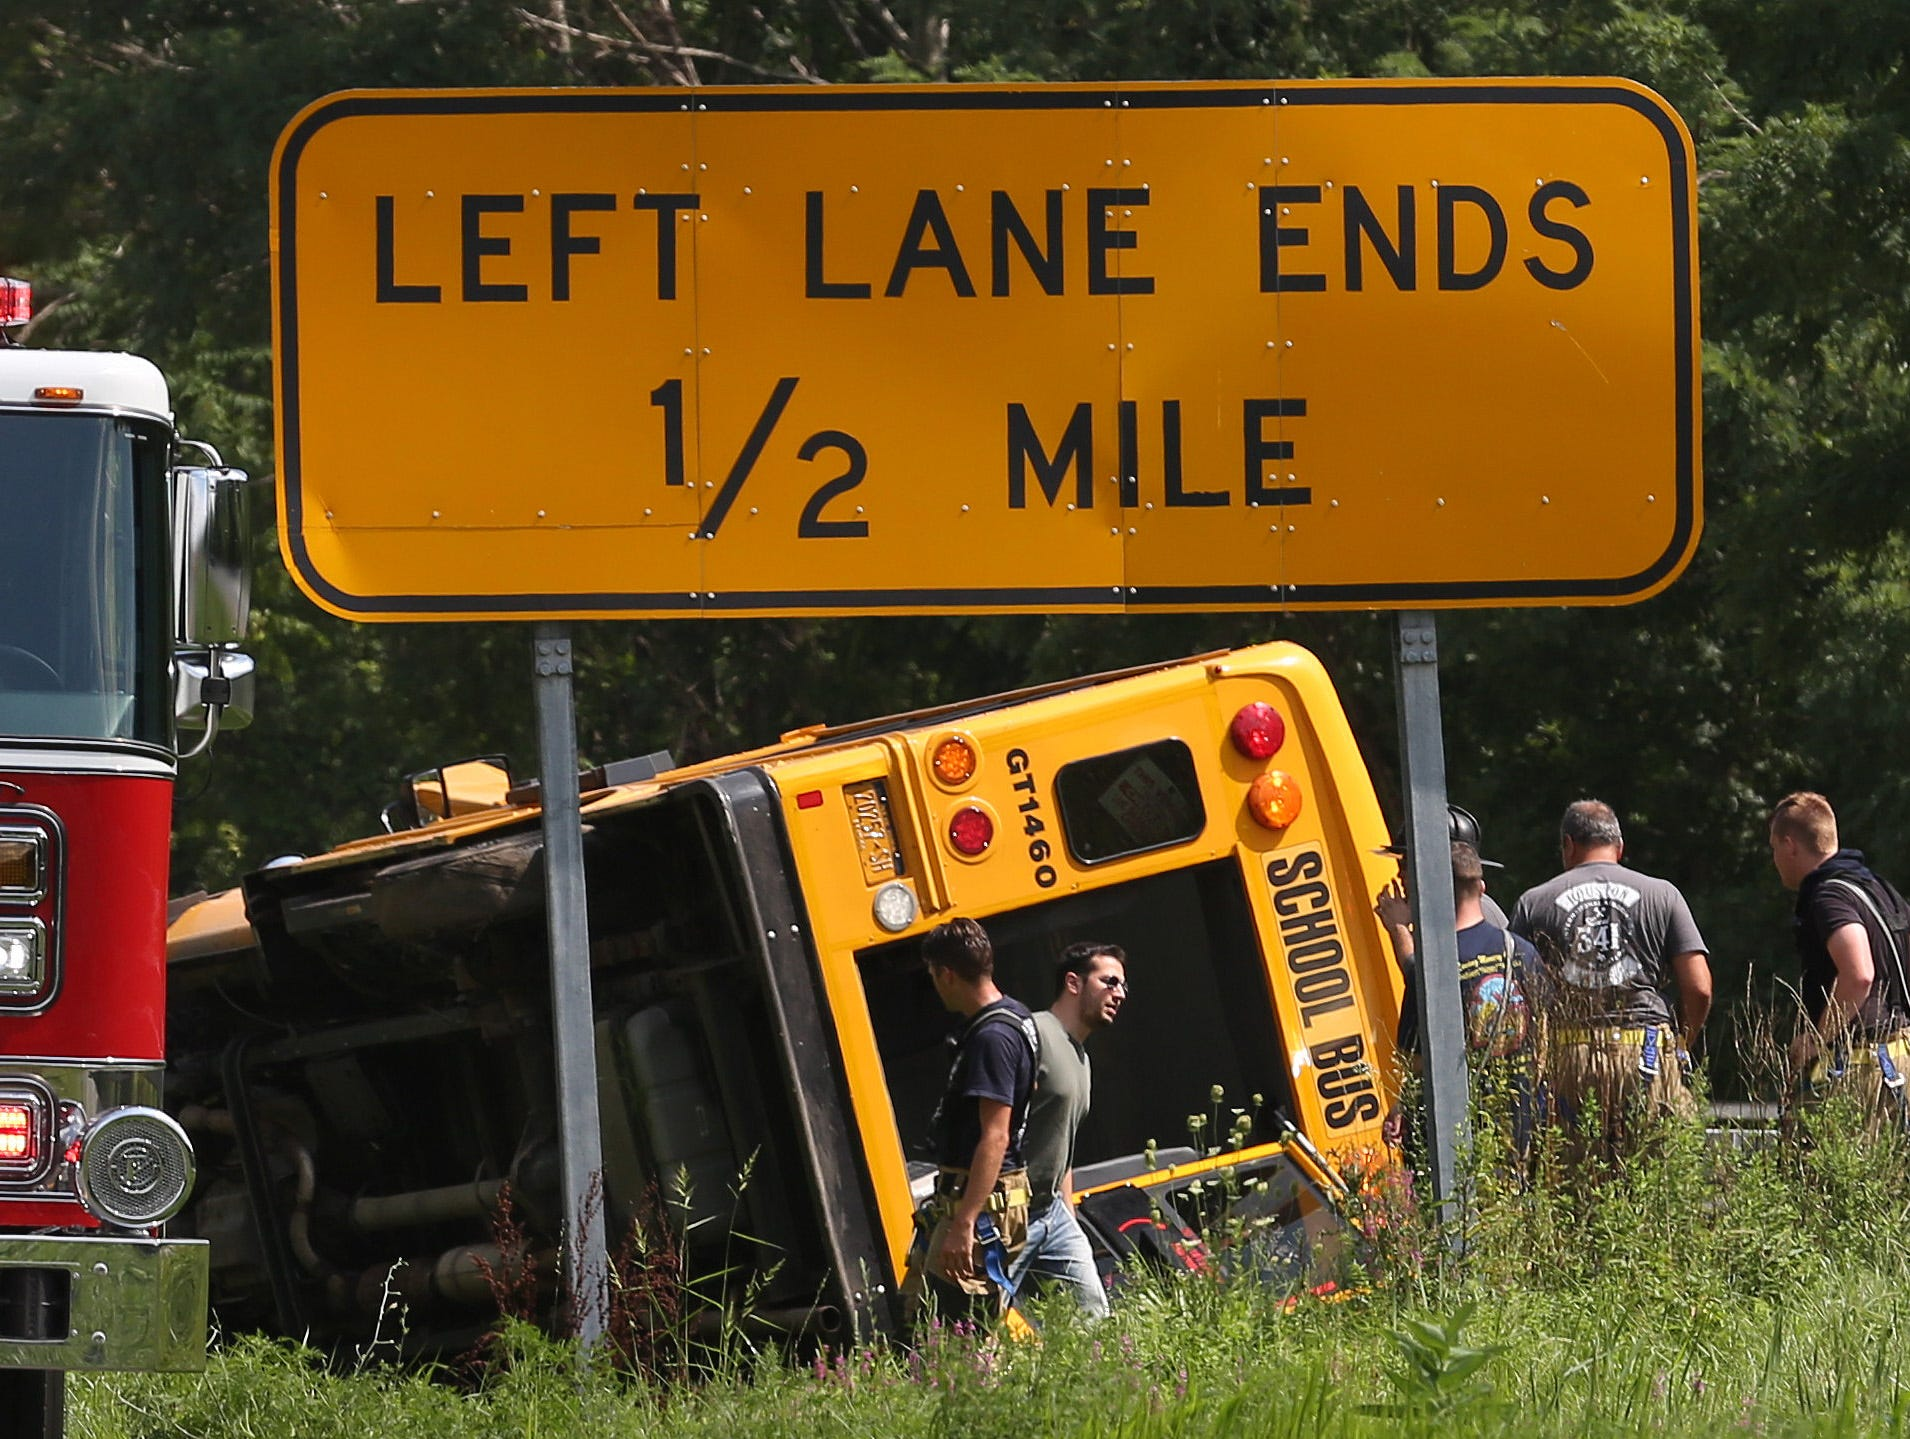 Firefighters work at the scene of a school bus rollover on the Hutchinson River Parkway at Manhattanville Road in Purchase Aug. 14, 2018. There were no injuries.